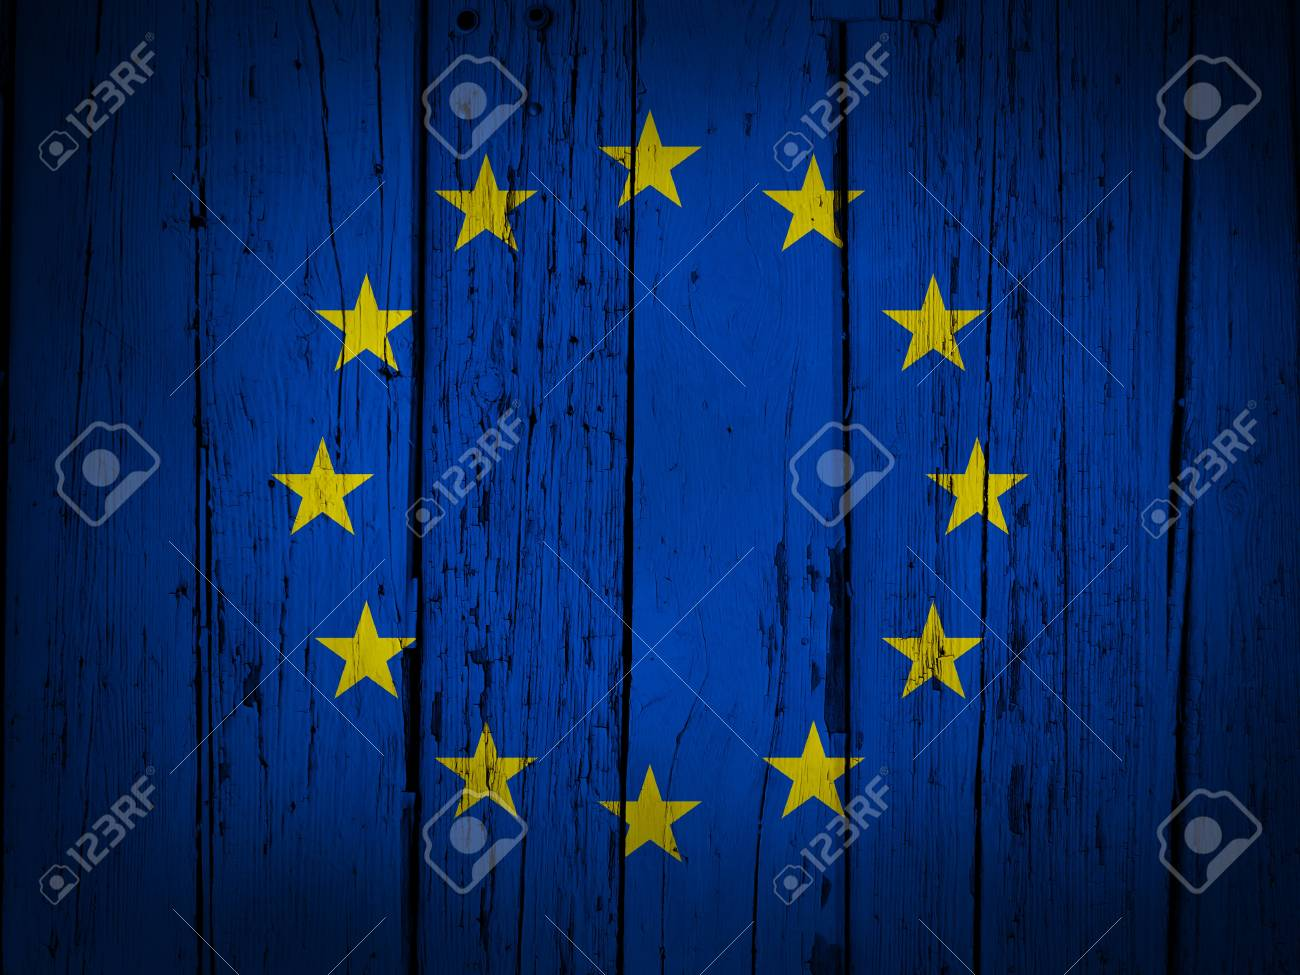 European Union grunge background with EU flag painted on wooden aged wall Stock Photo - 18850920